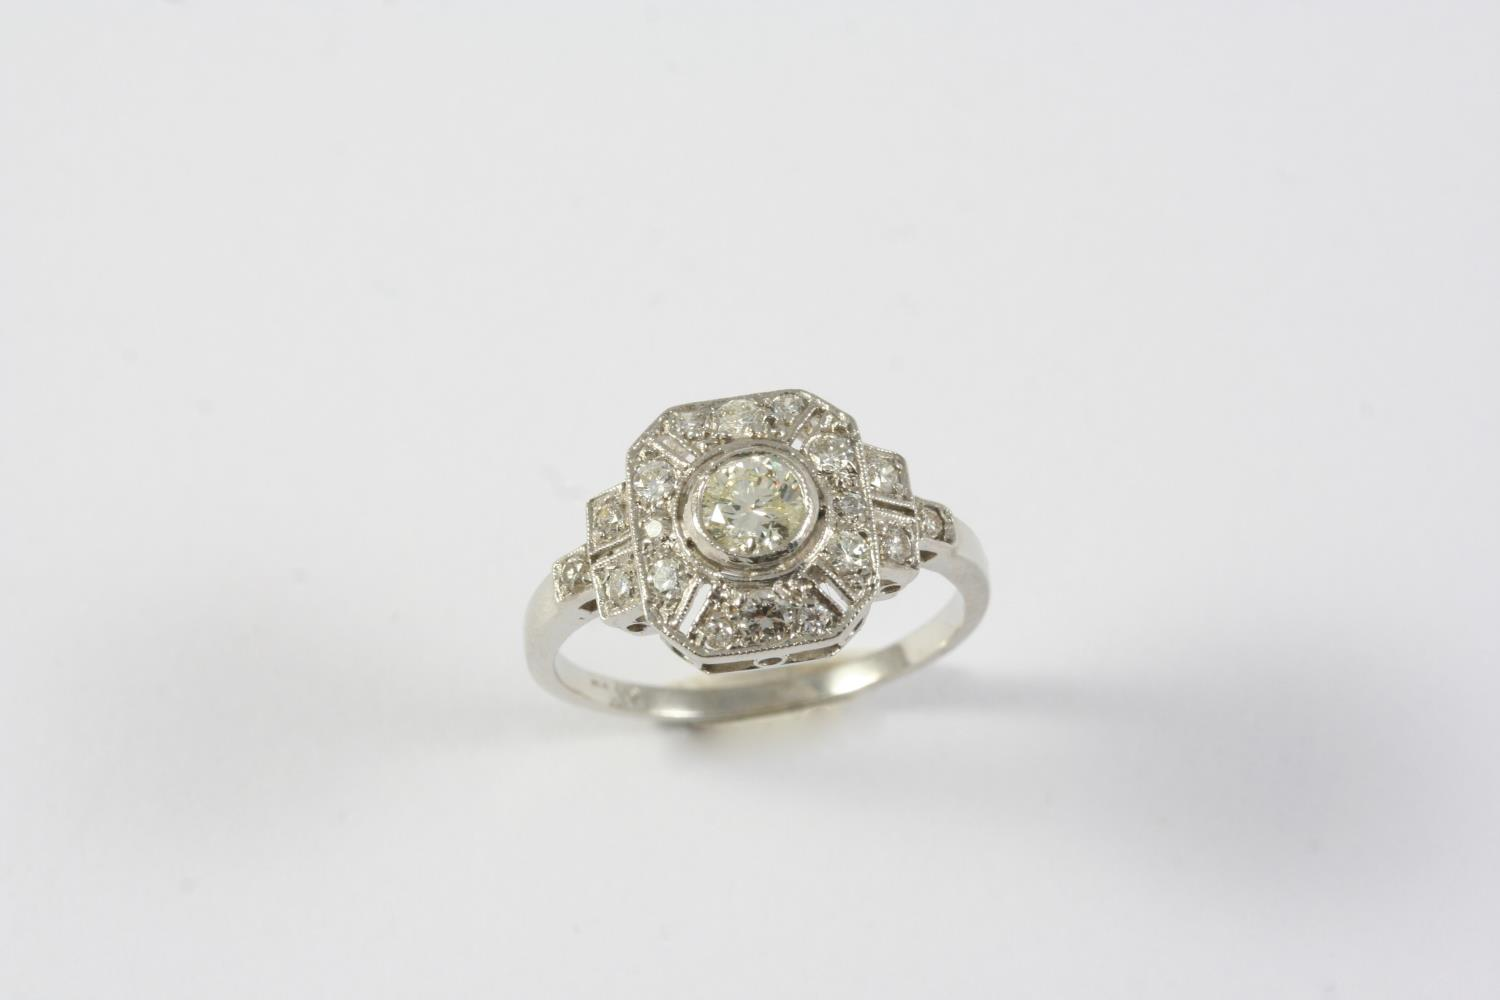 A DIAMOND CLUSTER RING the circular-cut diamond is collet set within a surround of smaller